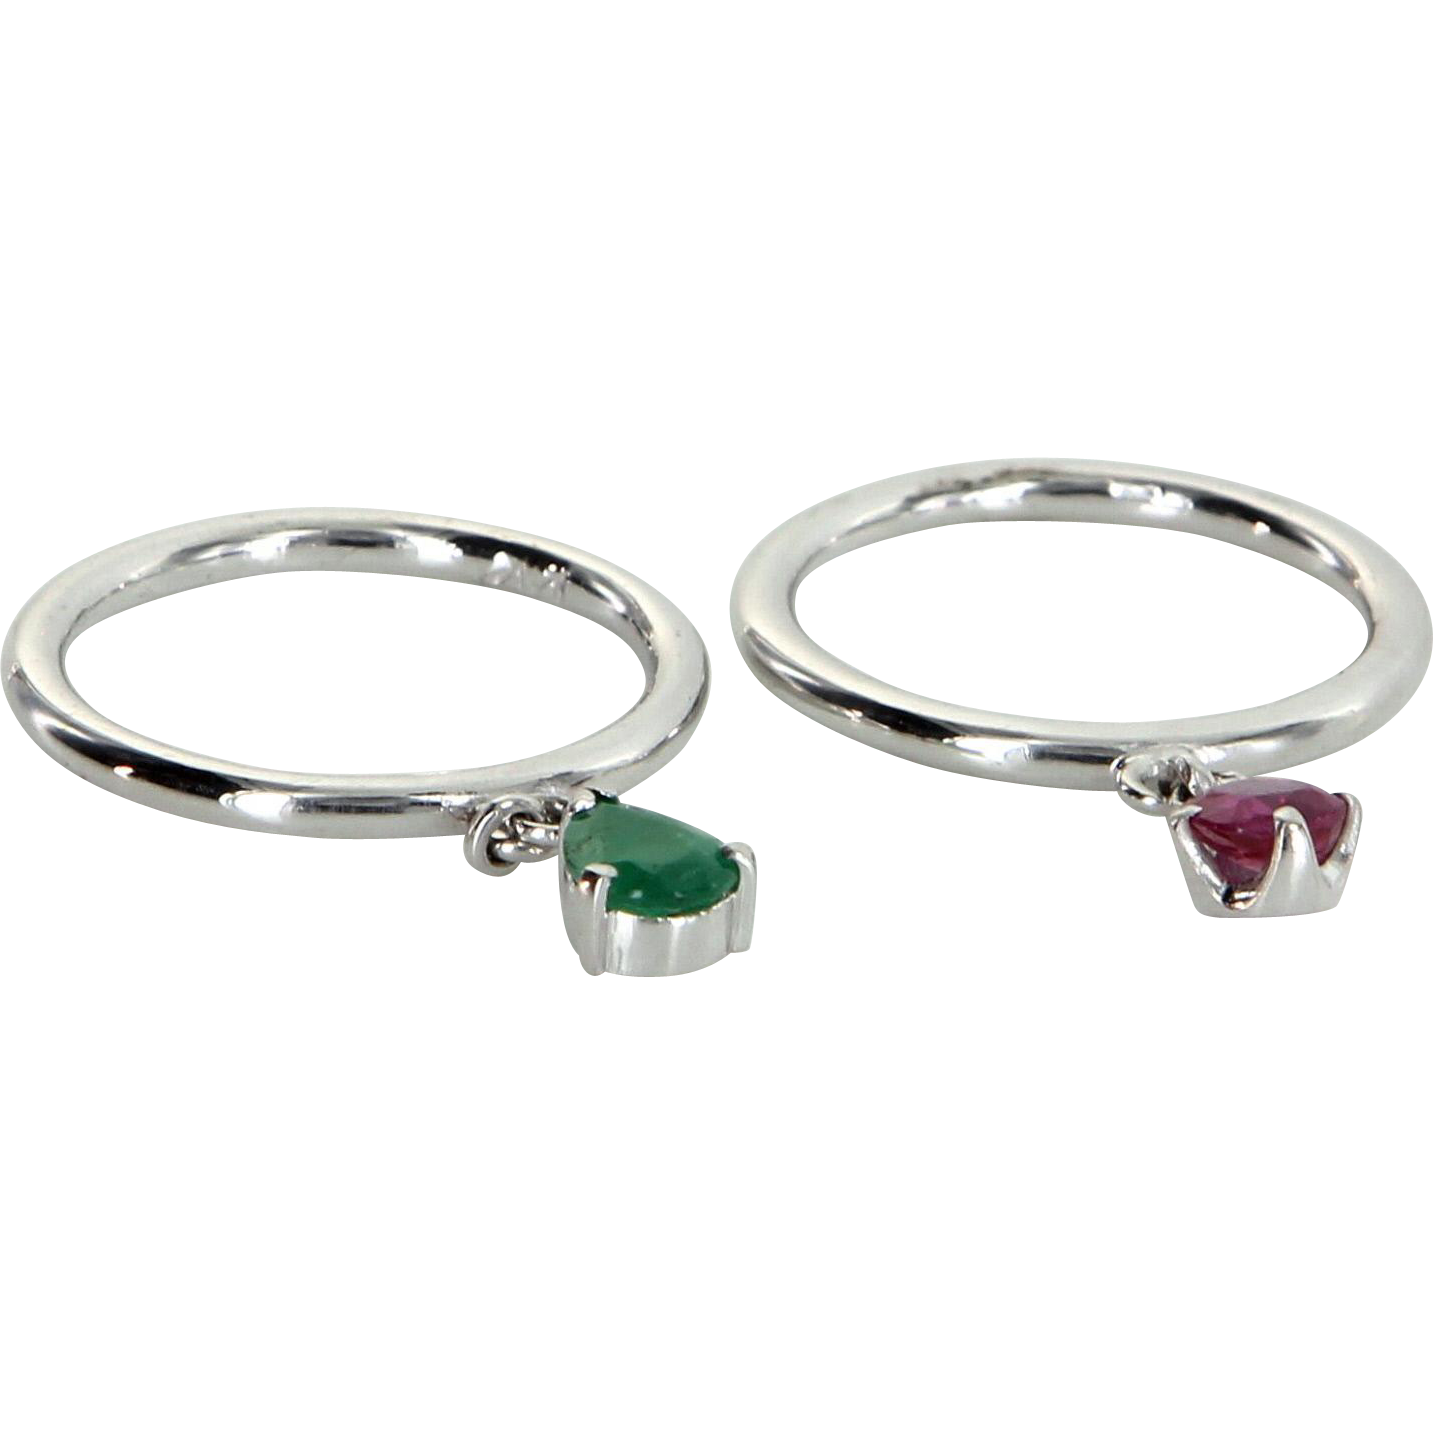 2 Ring Charm Set Vintage Ruby Emerald 14 Karat White Gold Estate Fine Jewelry 5.75